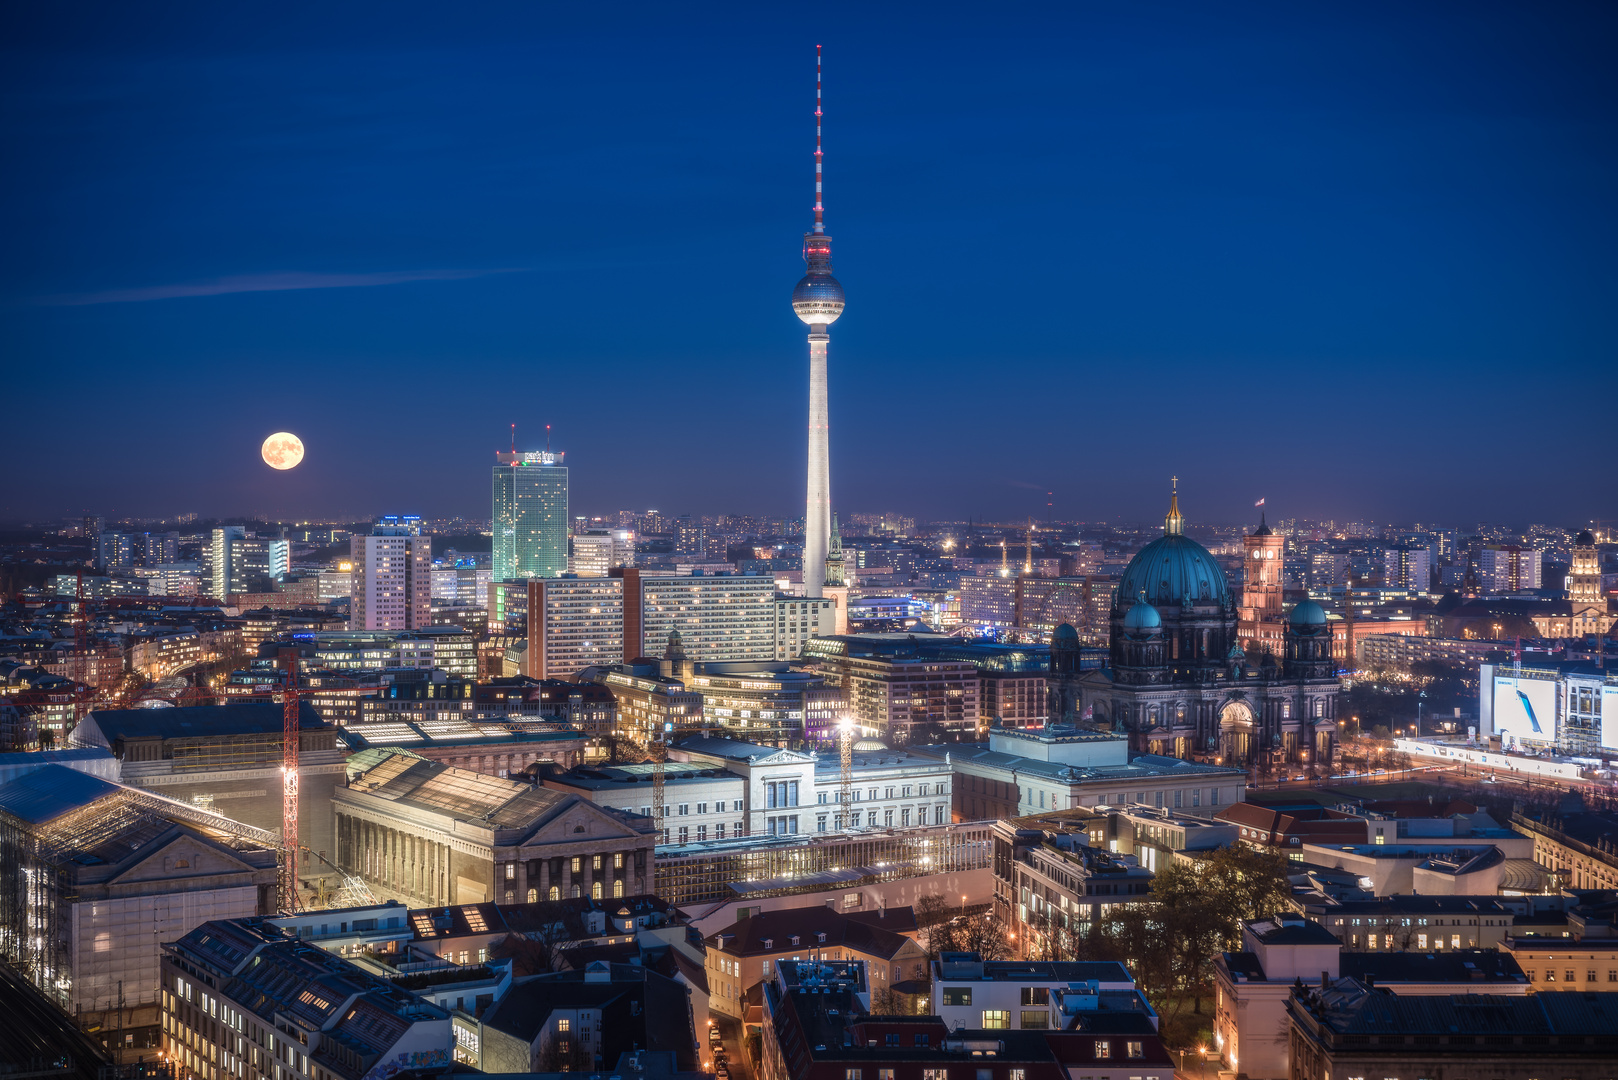 berlin skyline mit supermond foto bild city abend berlin bilder auf fotocommunity. Black Bedroom Furniture Sets. Home Design Ideas